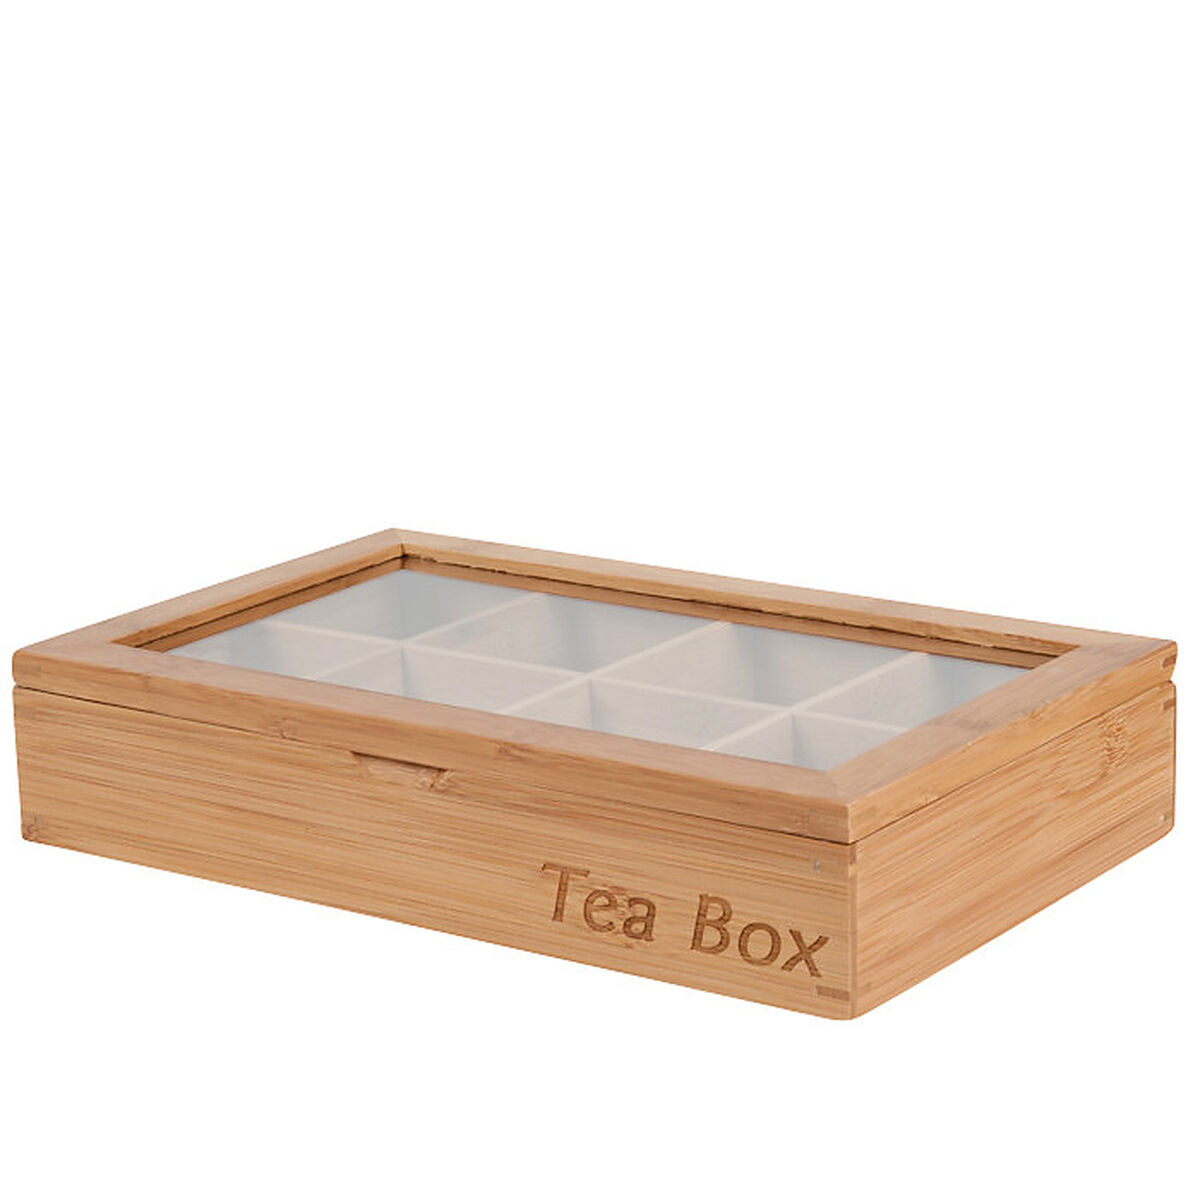 Teebox ca l 32x b 20 x h 6 5cm nude depot de for Depot bad